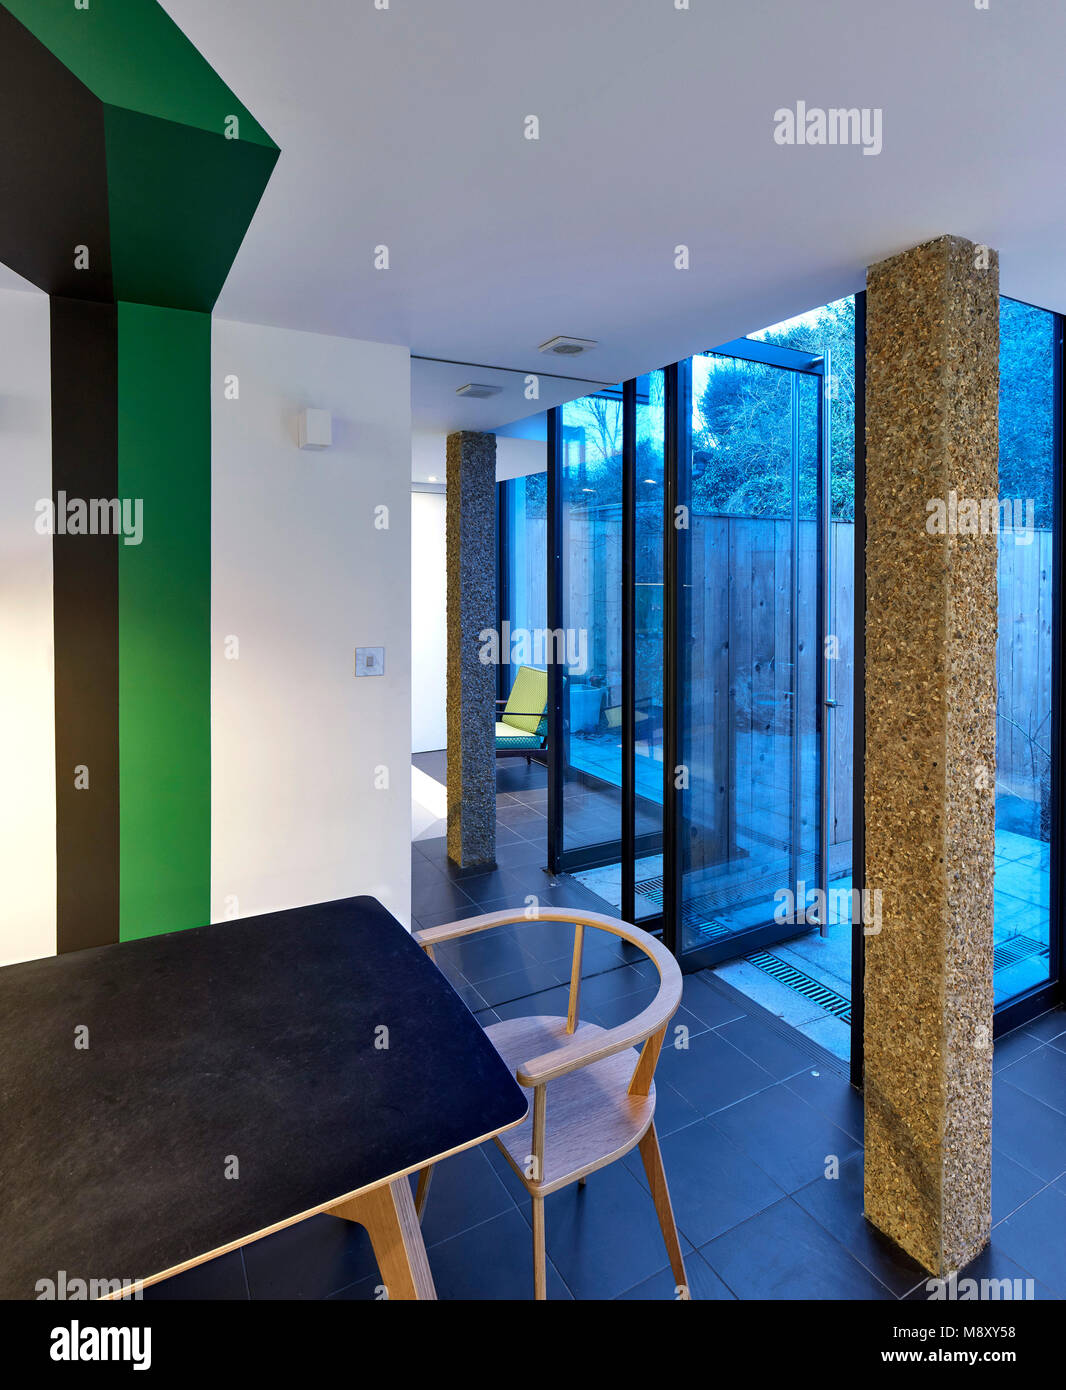 Interior view towards garden. Sean Griffiths, London, United Kingdom. Architect: Sean Griffiths , 2018. - Stock Image